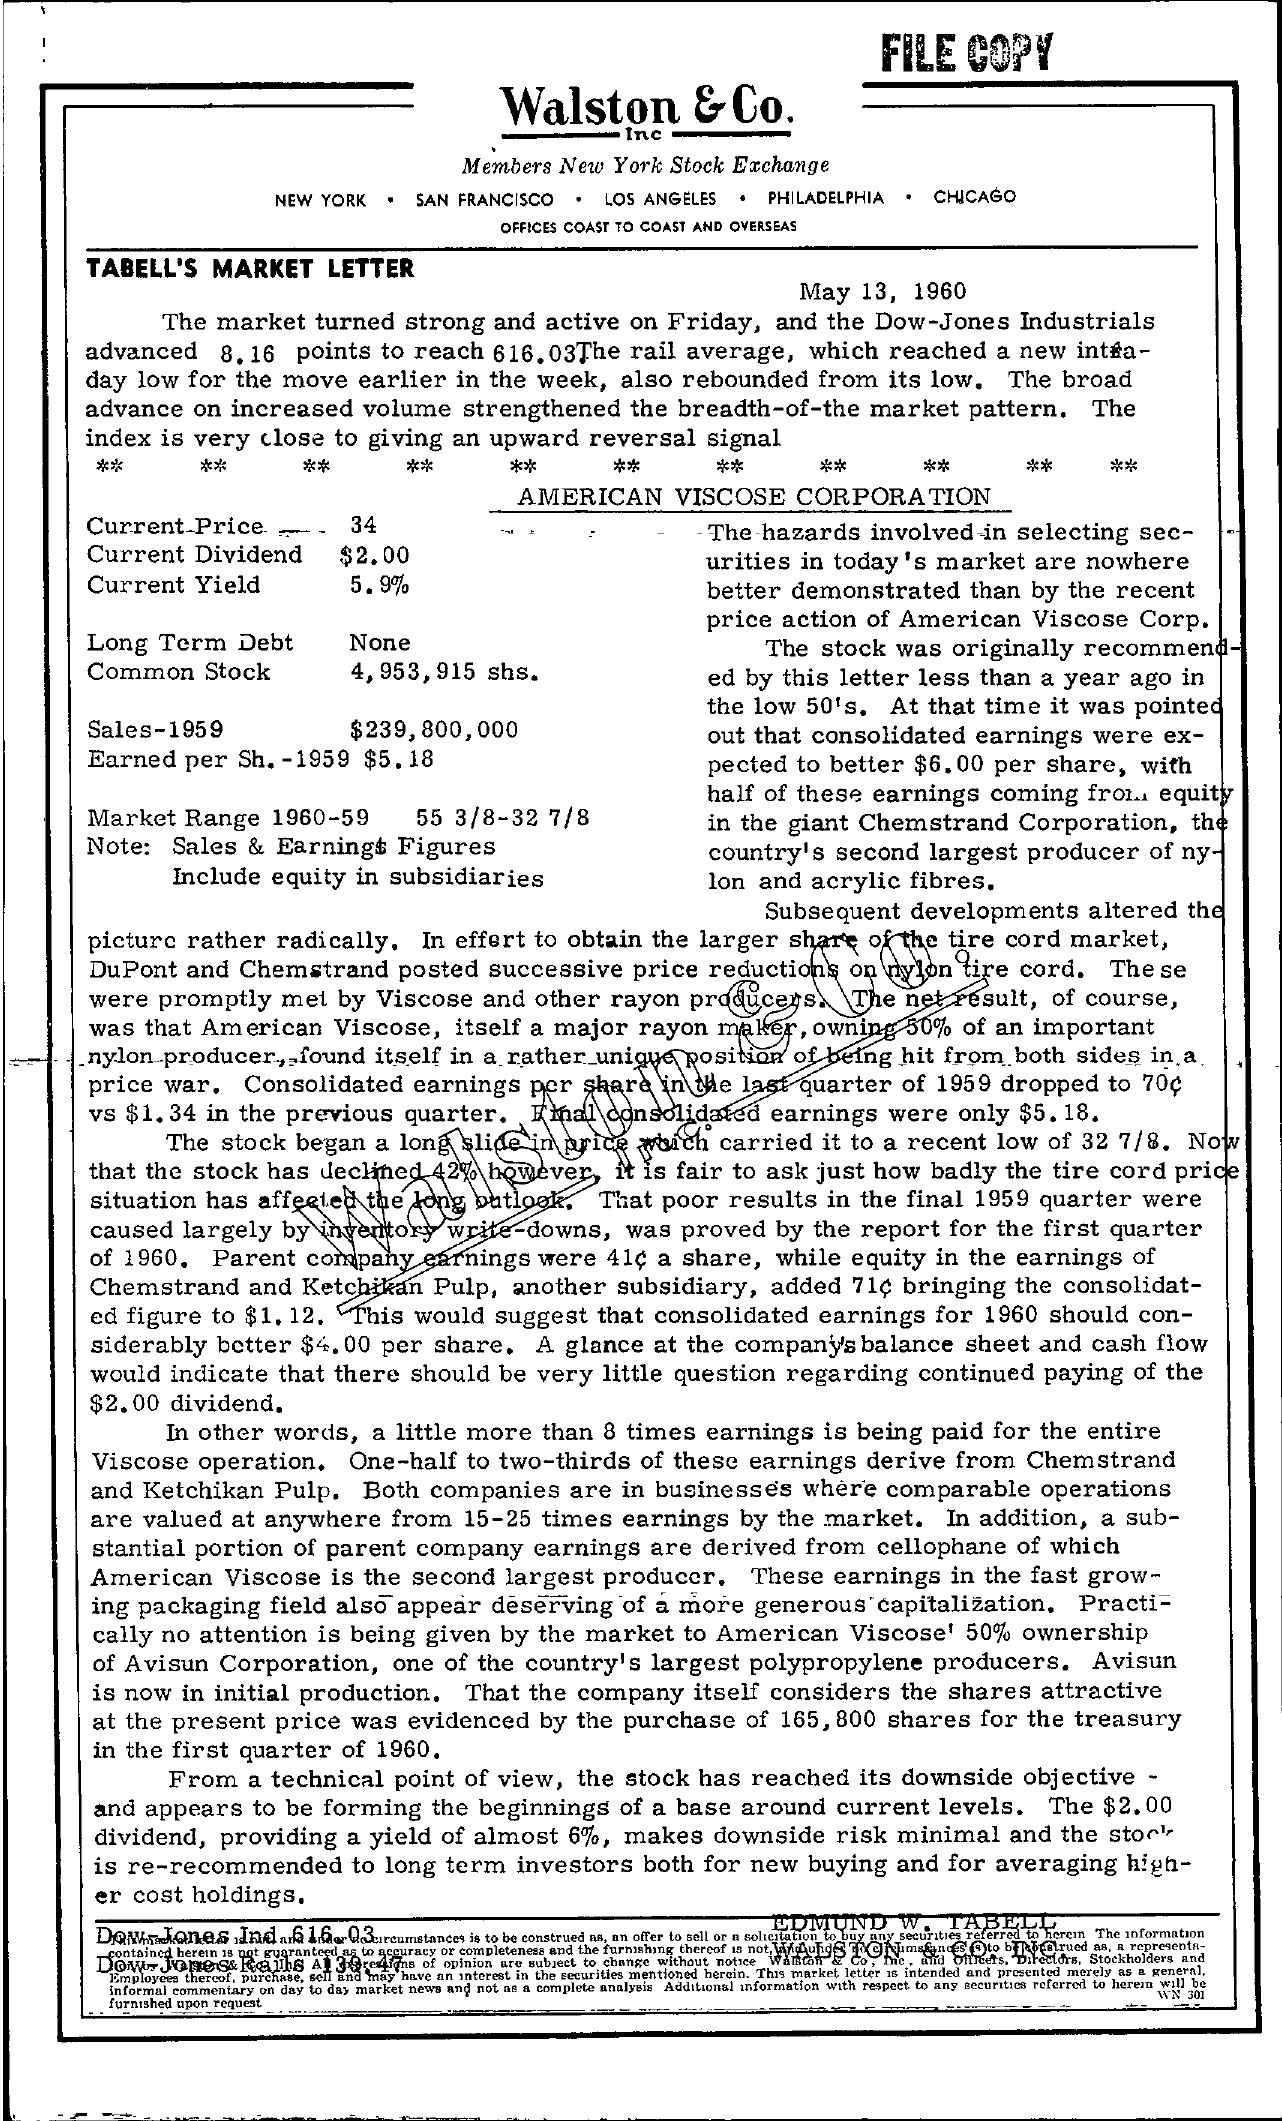 Tabell's Market Letter - May 13, 1960